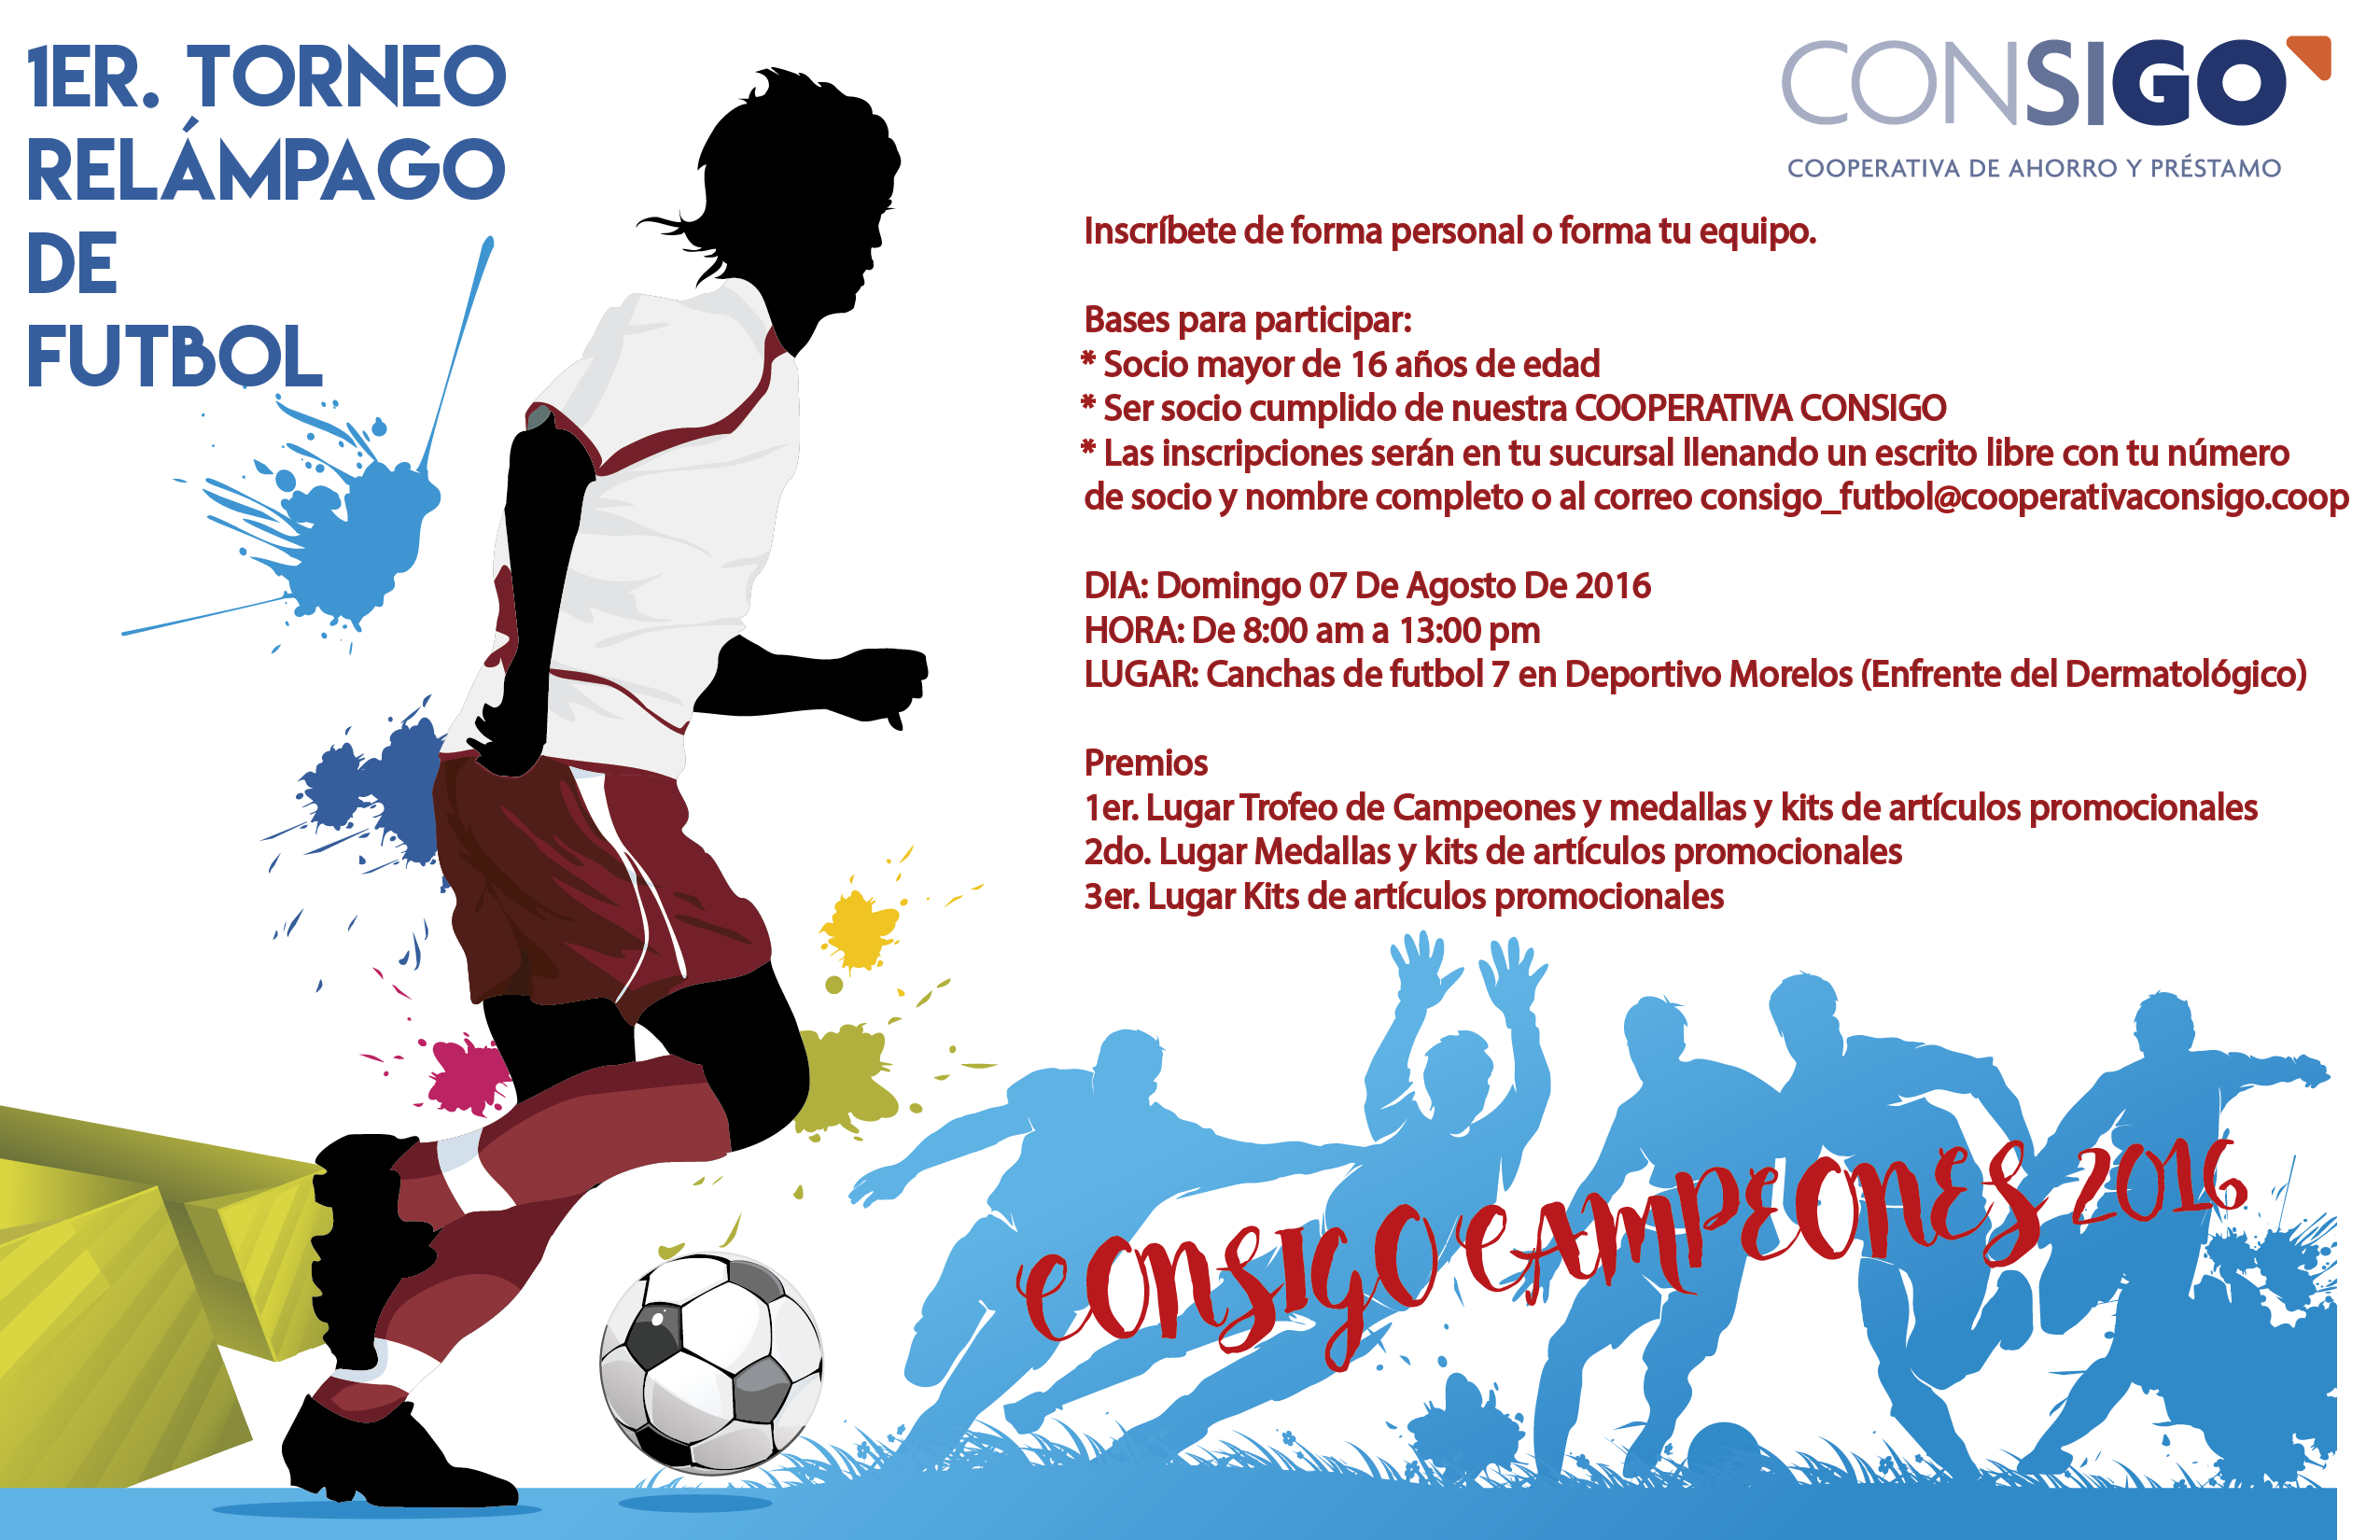 torneo-relampago-02